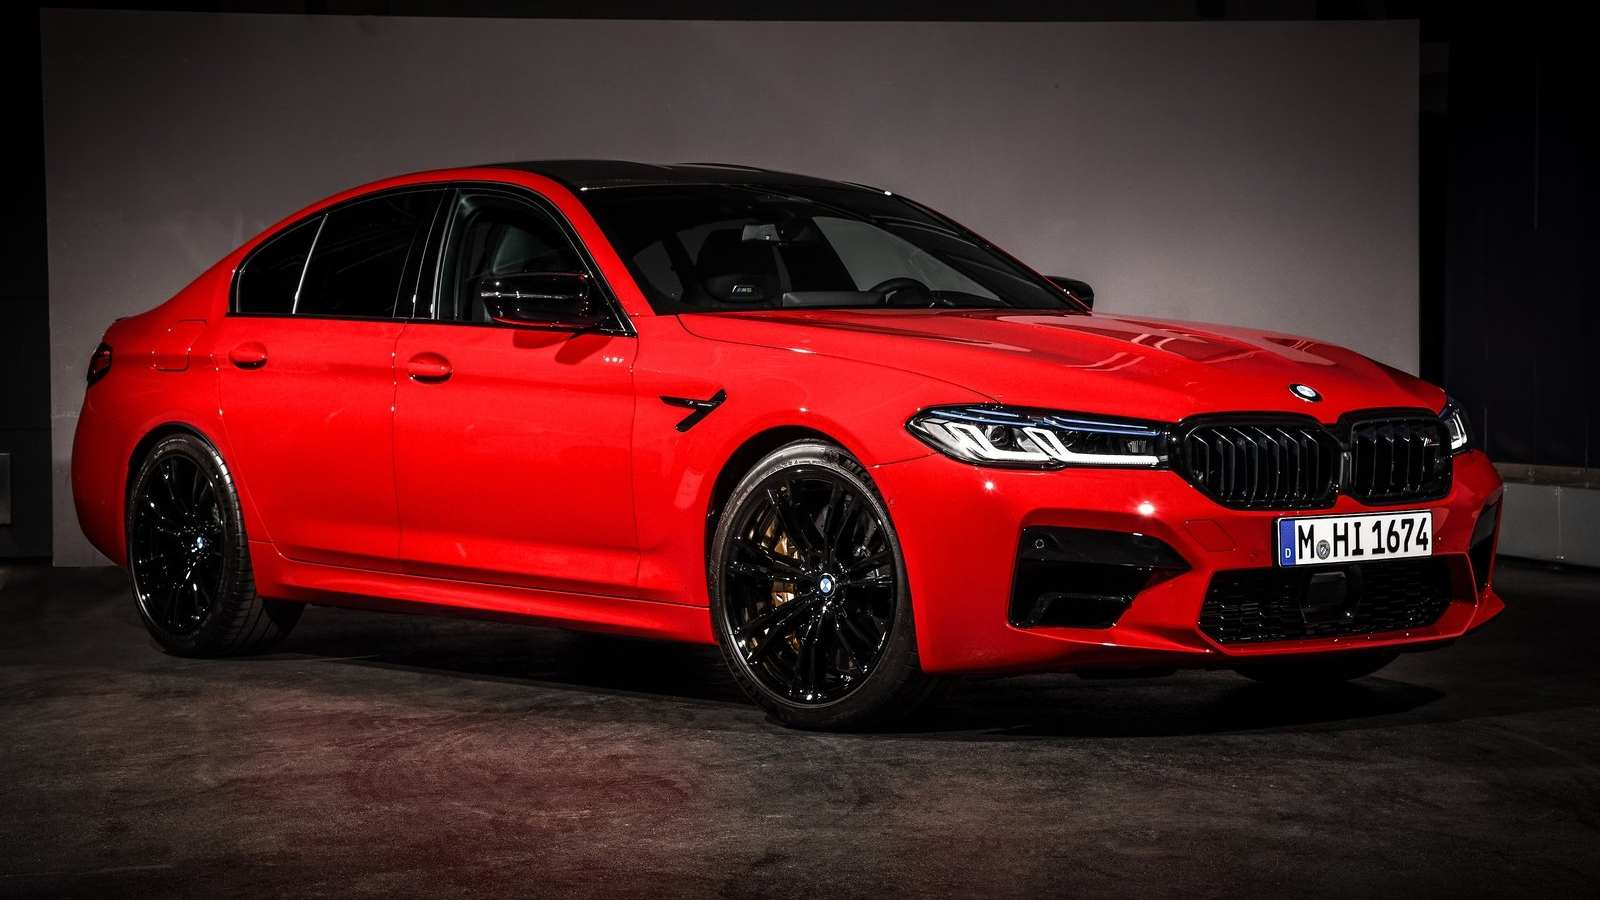 With its midlife update, the BMW M5 Competition looks far more aggressive than before. Image: BMW